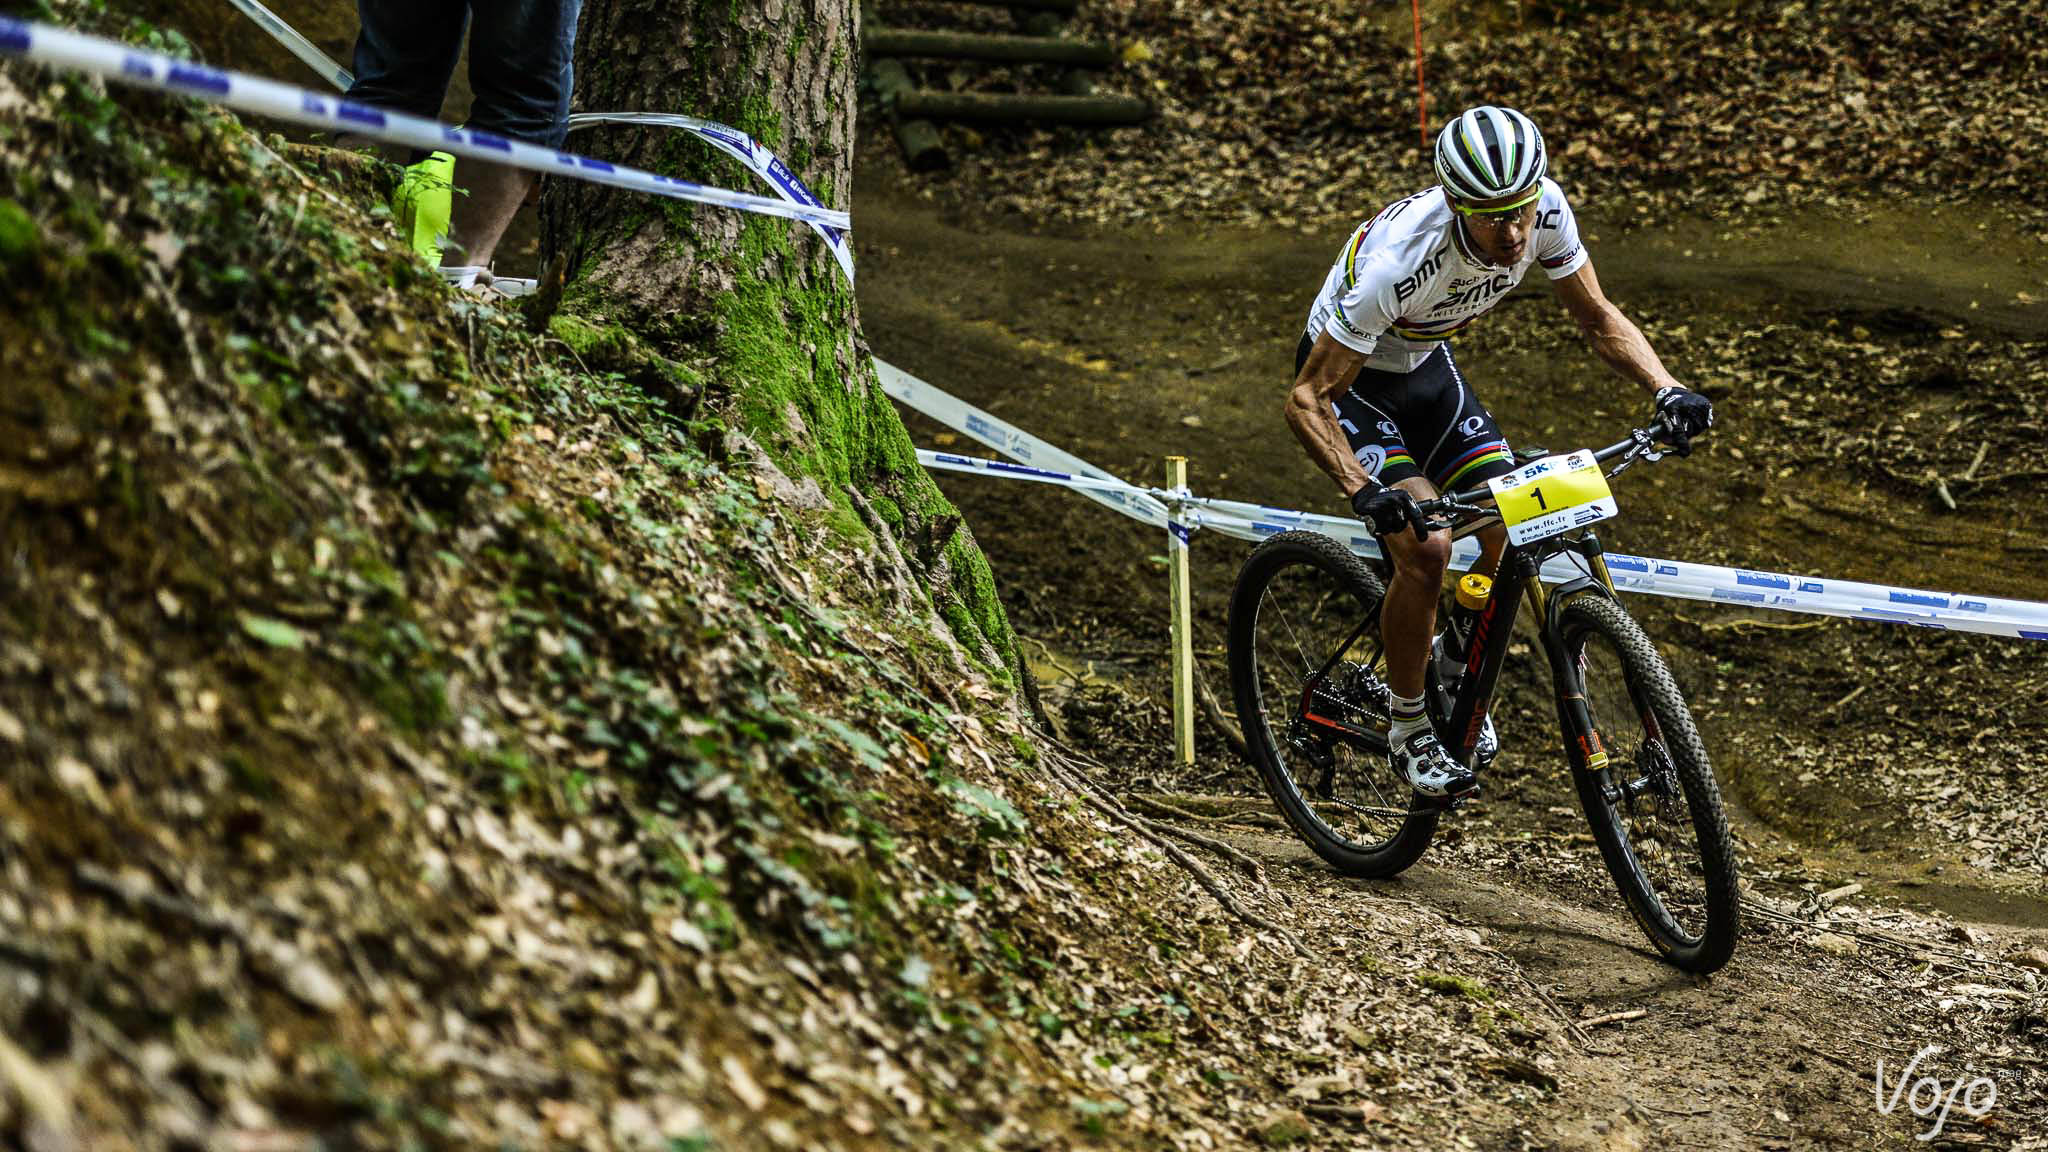 Coupe_France_VTT_Lons_le_Saunier_Absalon_Marotte_Koretzky_Copyright_Romain_Laurent_VojoMag-8